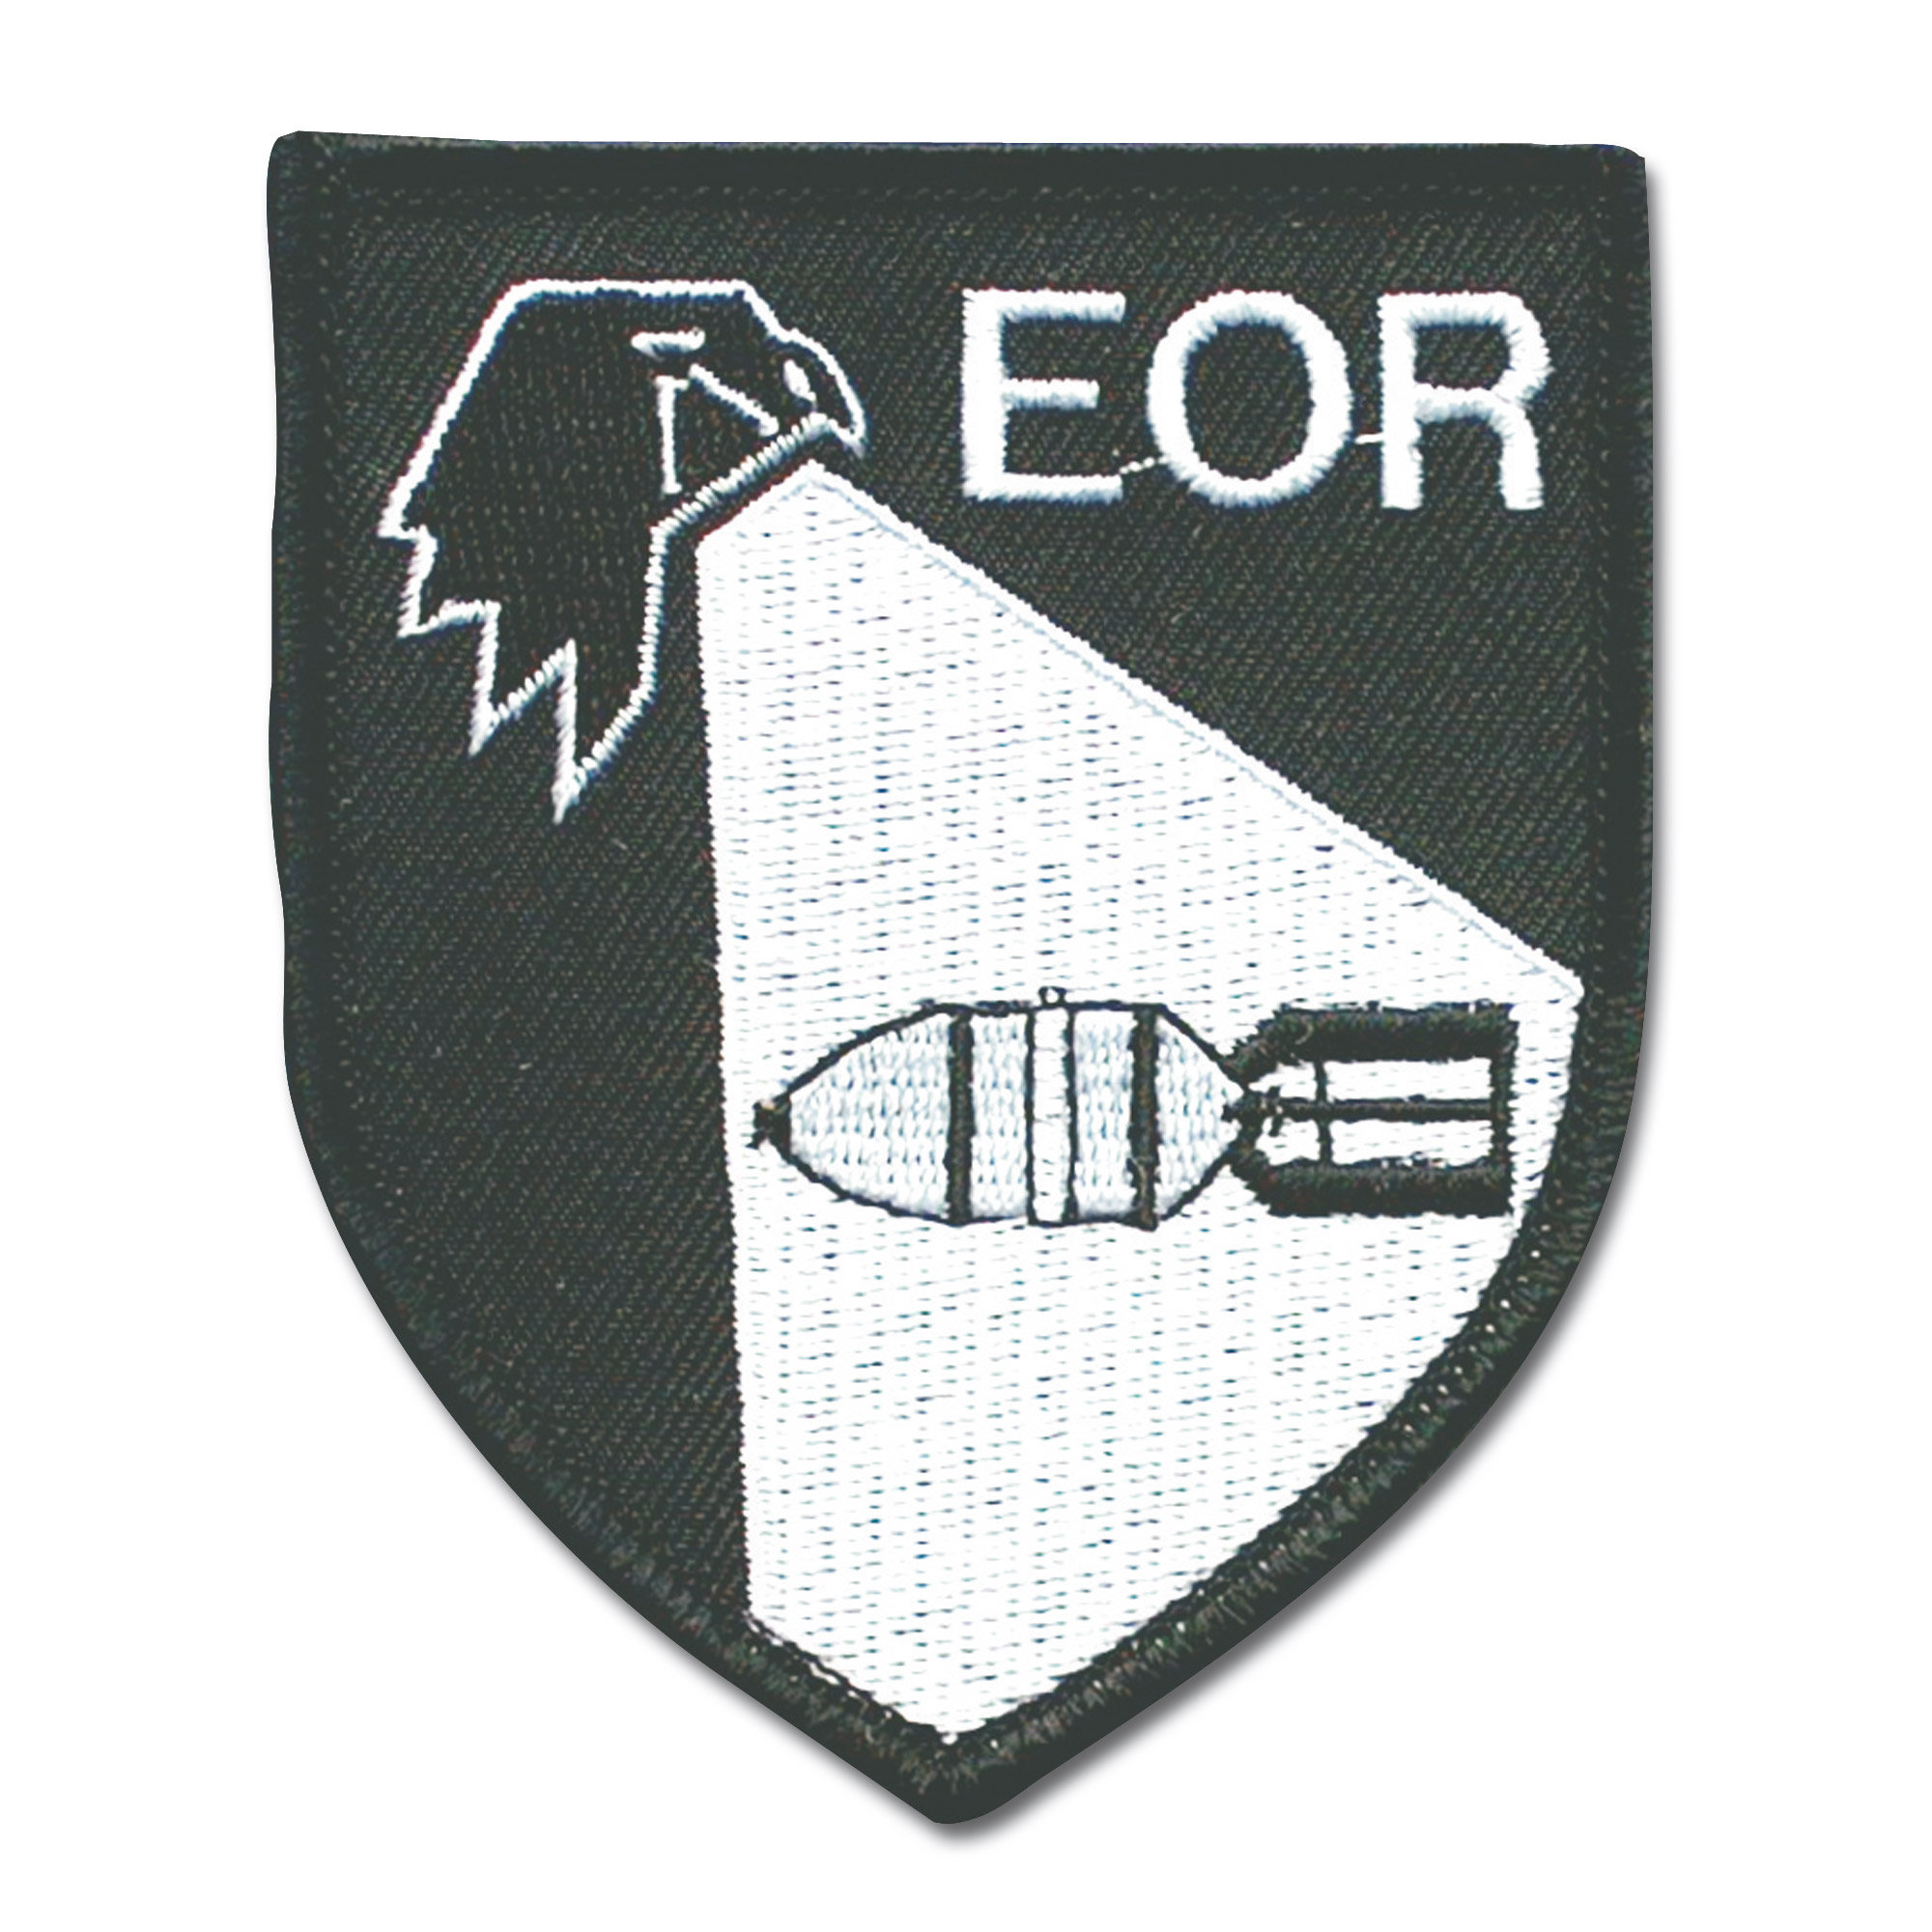 Insignia Bomb Disposal EOR textile